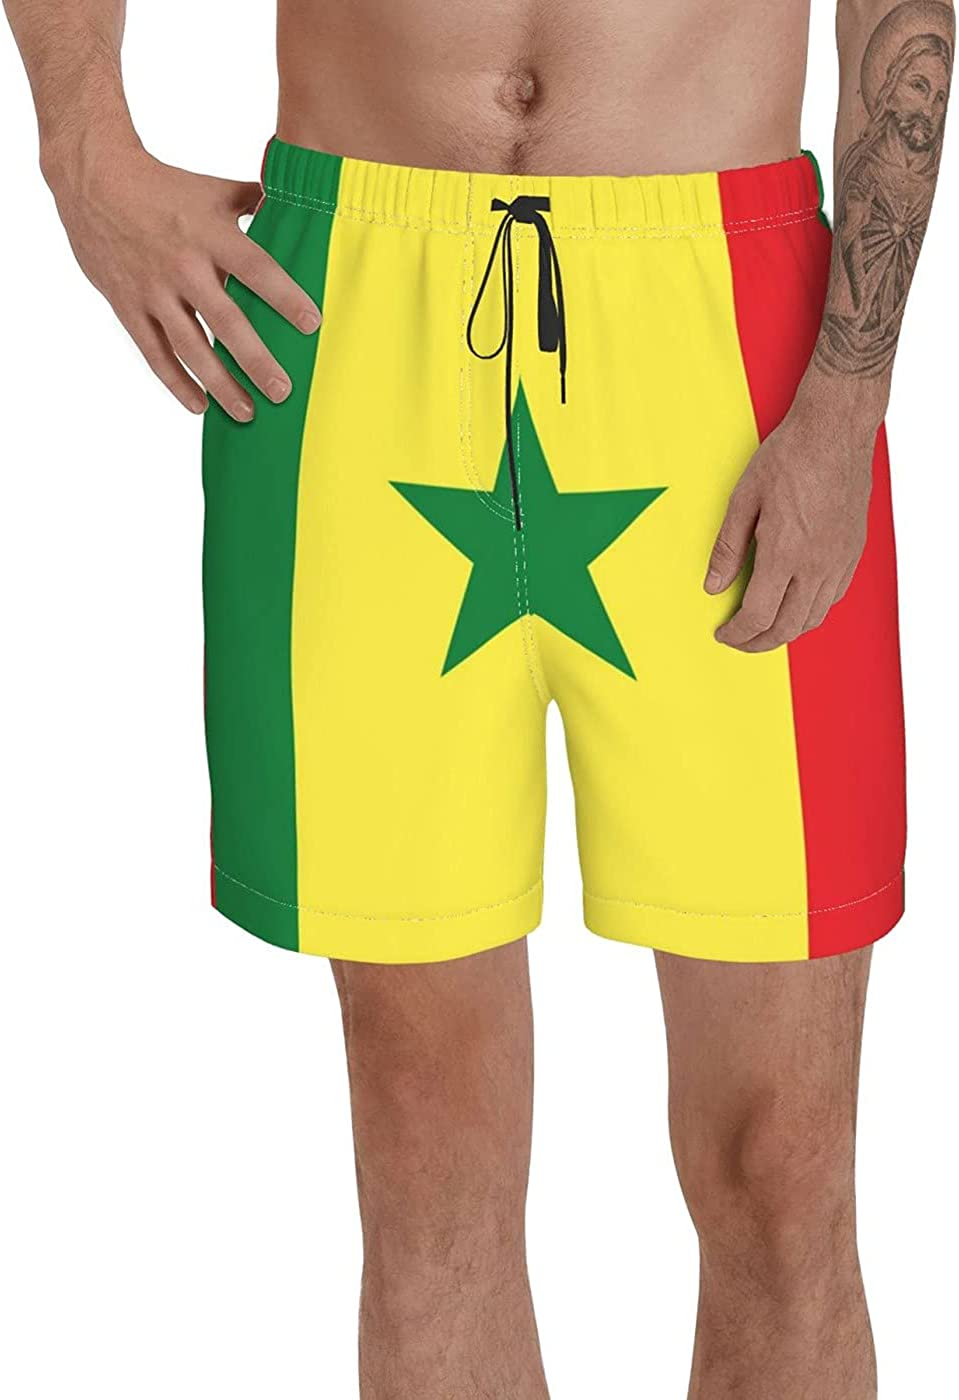 Count Senegal Flag Men's 3D Printed Funny Summer Quick Dry Swim Short Board Shorts with